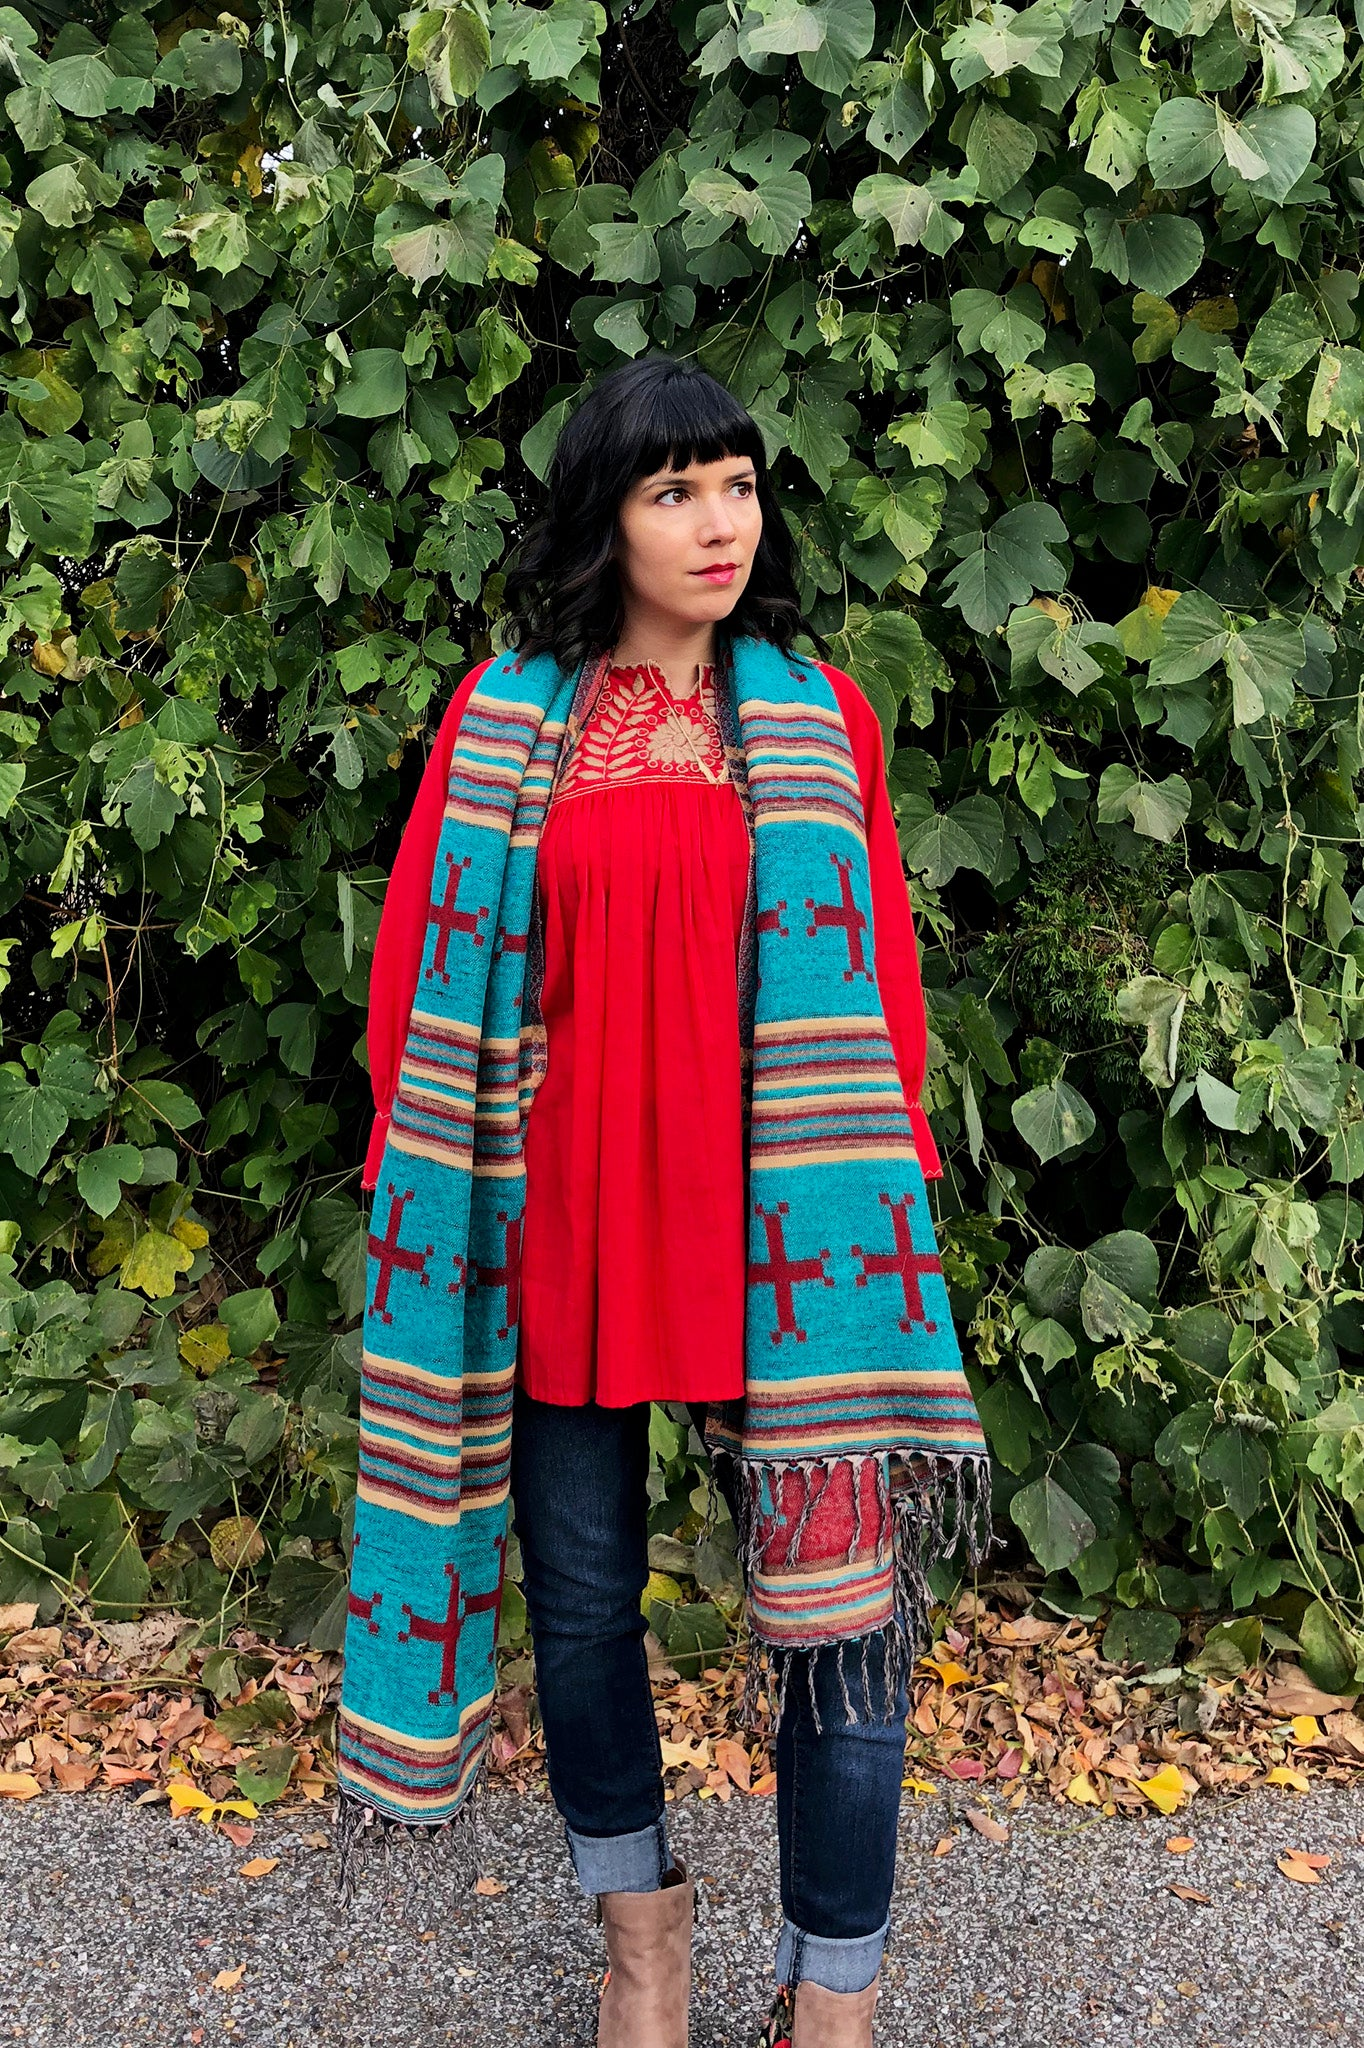 ShopMucho owner styles ways to wear the southwest style shawl with the Mexican blouse and skinny jeans